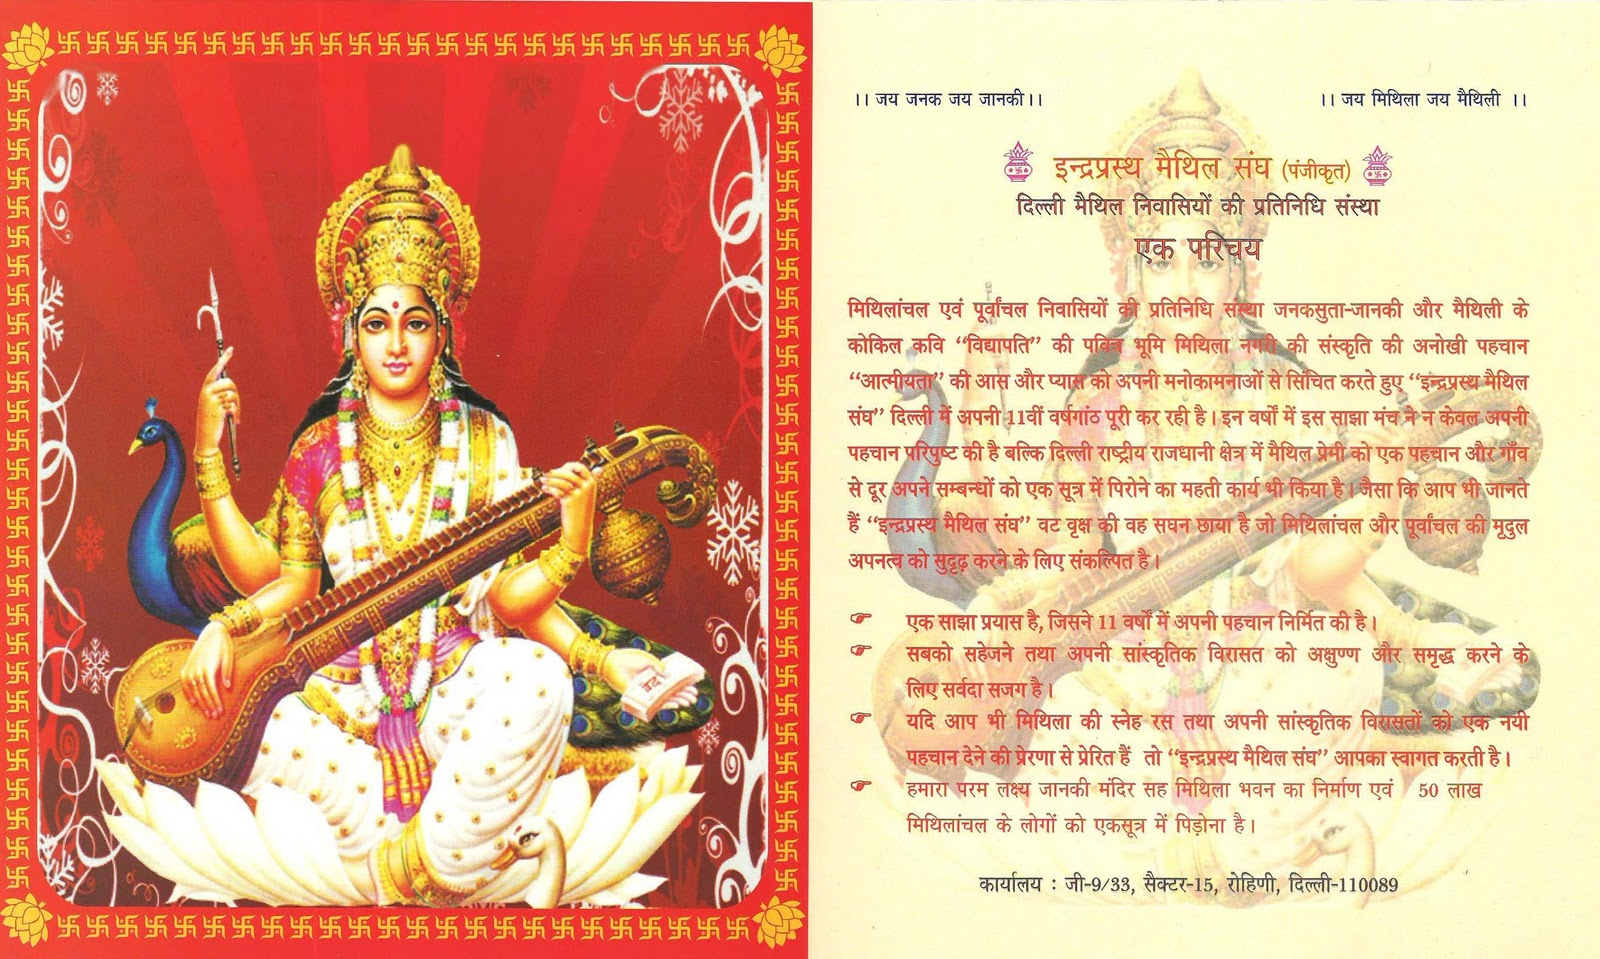 Saraswati Puja Card Design - Premium Invitation Template Design | Bliss Escape